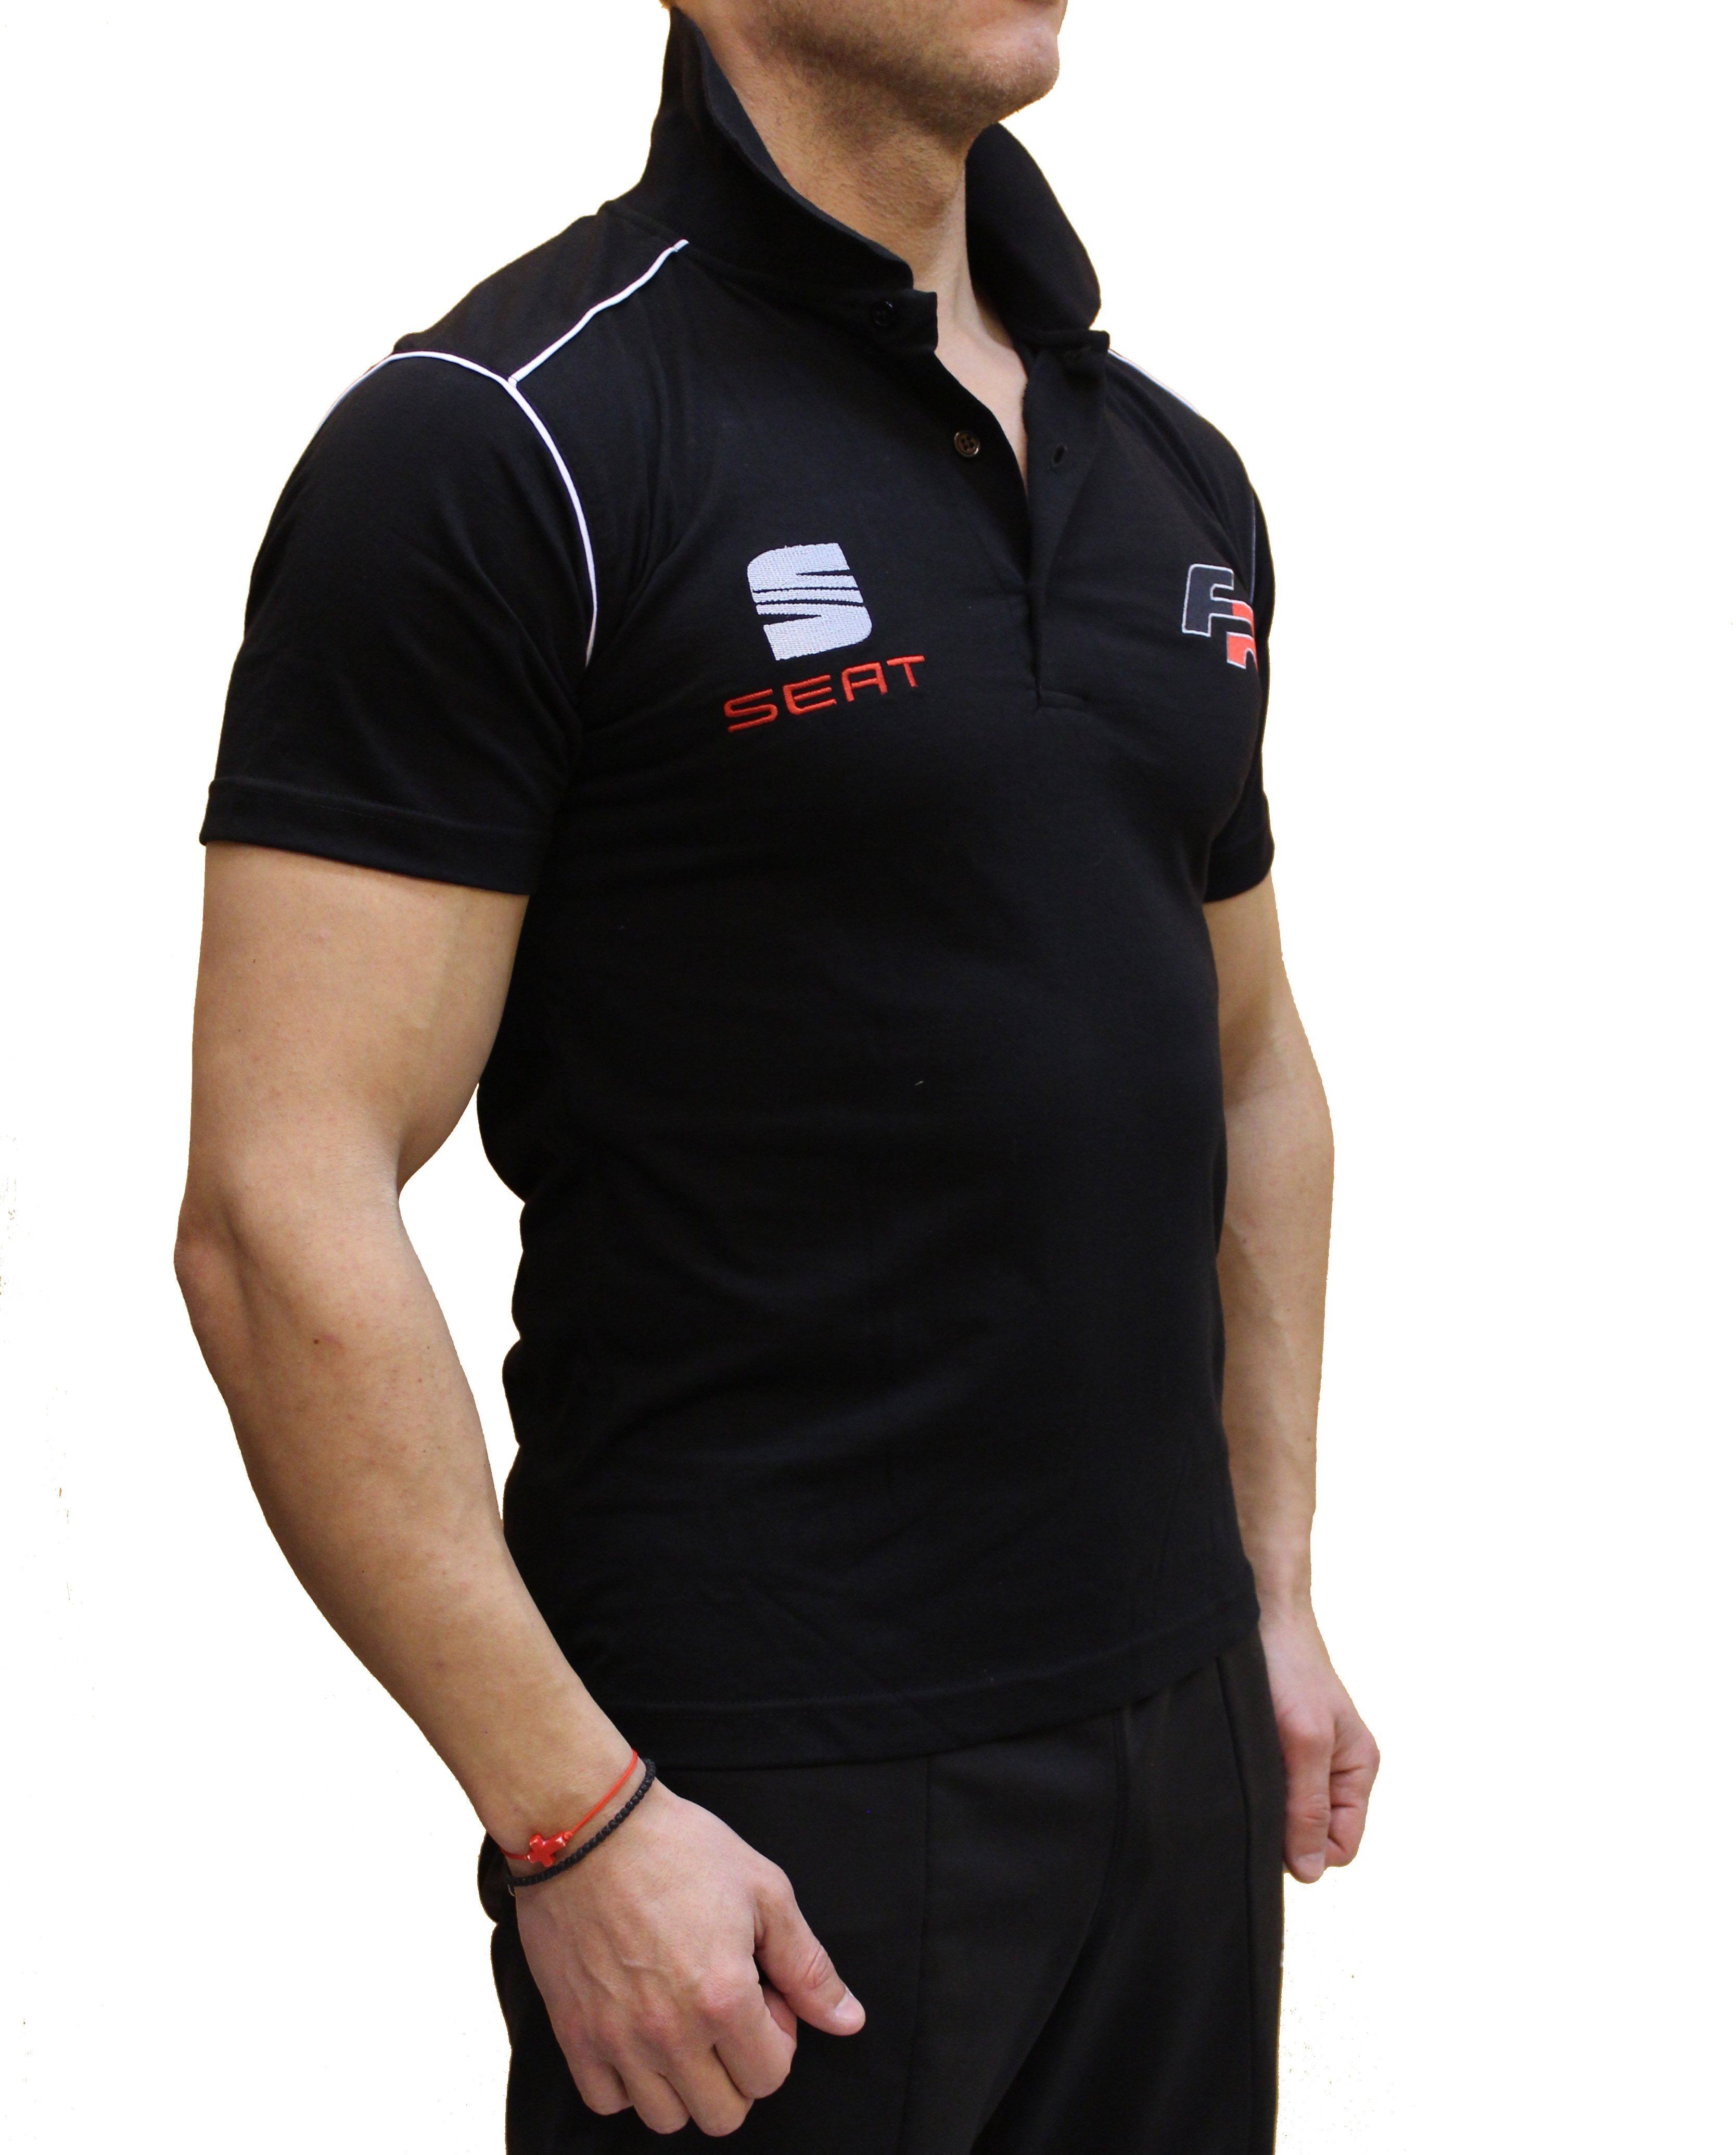 fbec8e3f5d Seat Polo shirt designed and hand-crafted by Auto Moto Fans